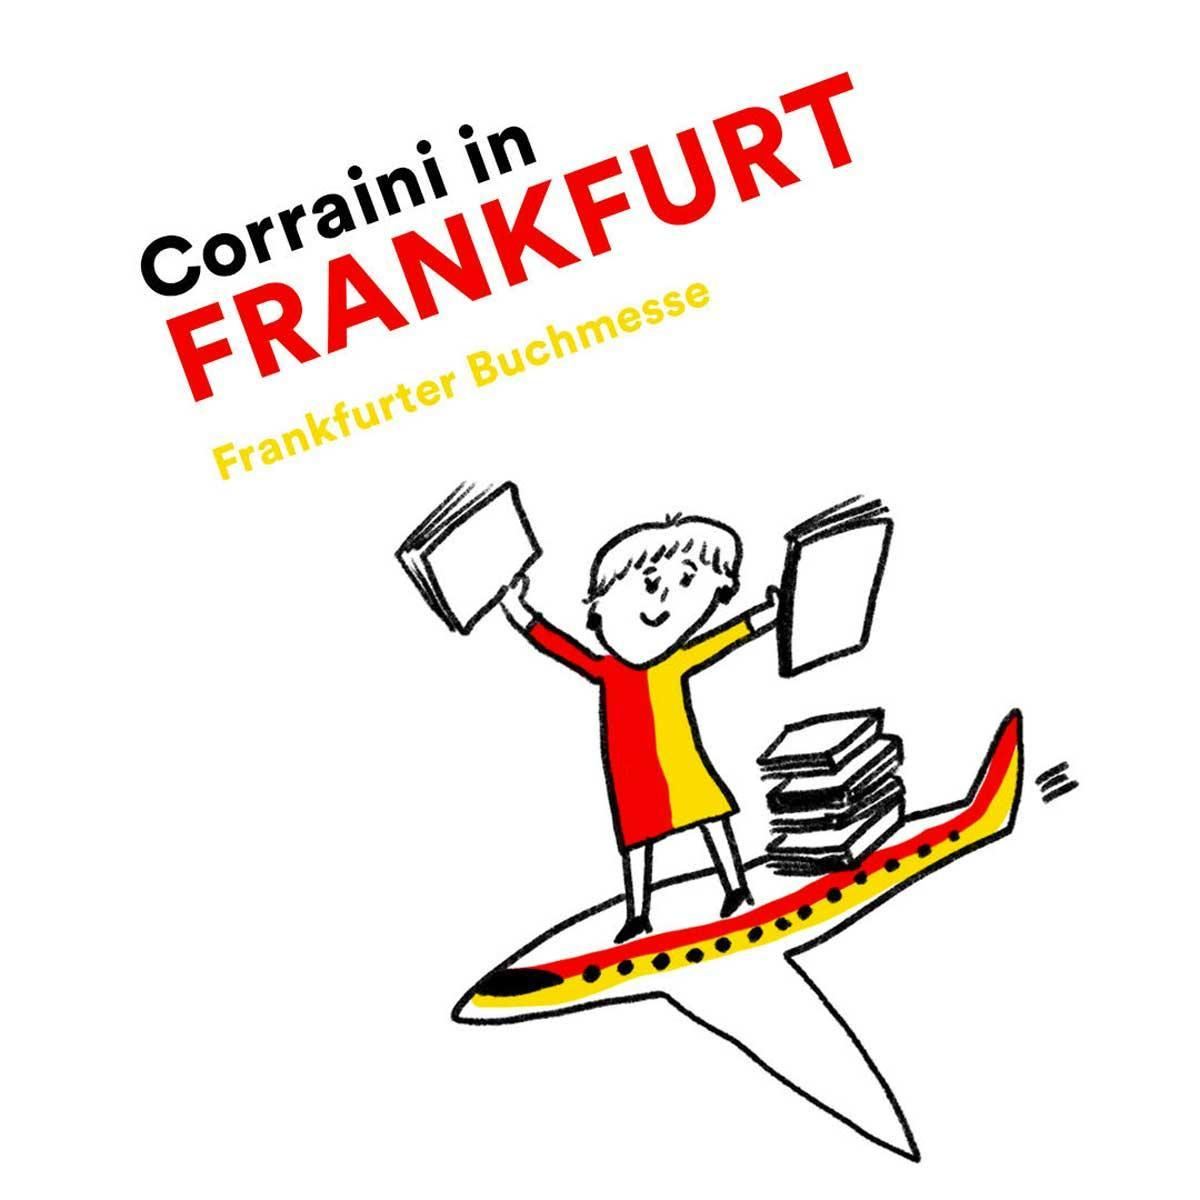 Corraini a Frankfurt Book Fair 2019